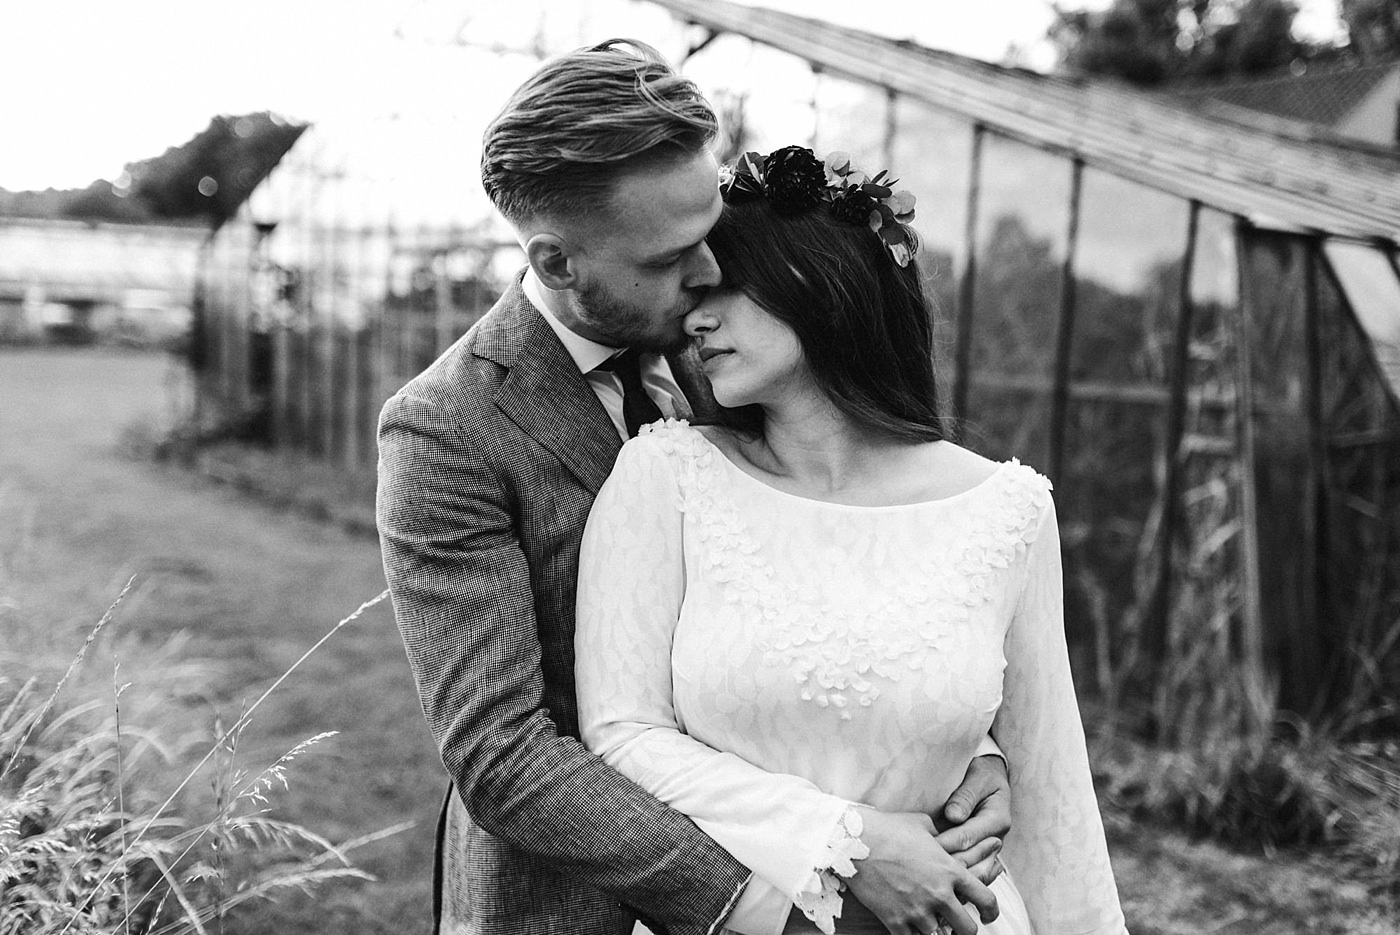 urban-elopement-wedding-253 Merve & Nils emotionales Elopement - Wedding Wesel & Schottlandurban elopement wedding 253 1